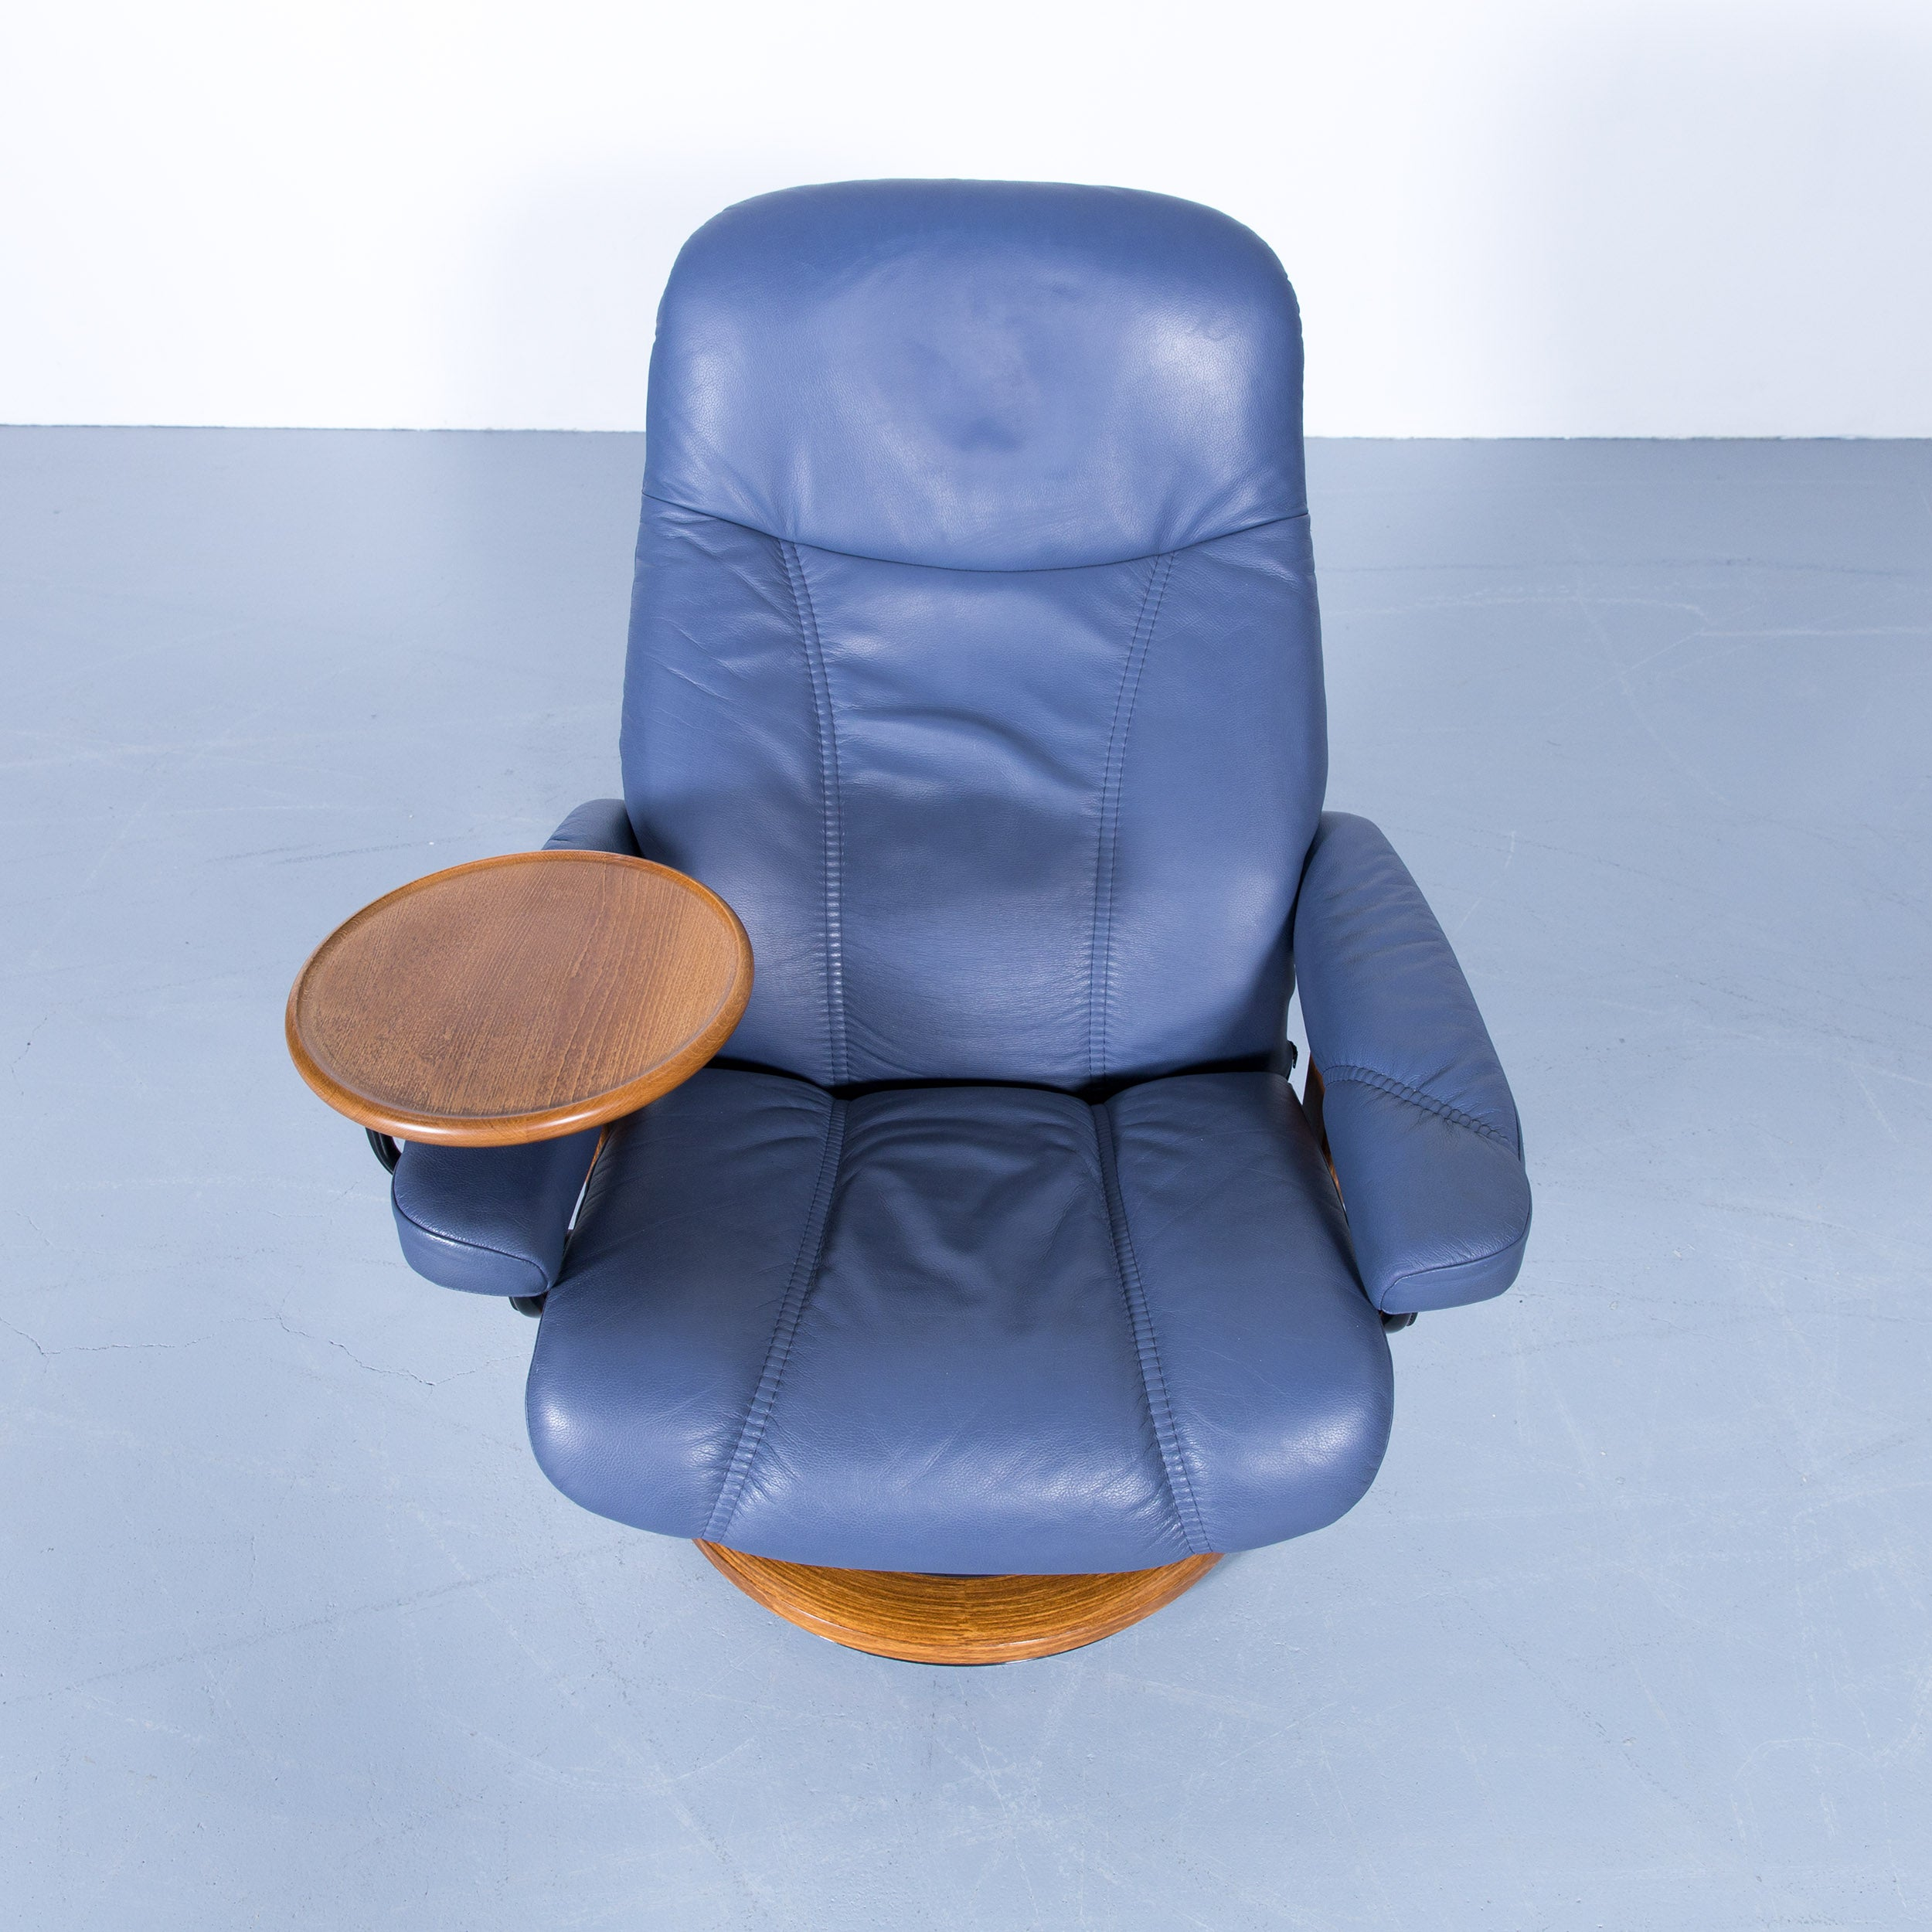 Stressless Sessel Ebay Mayfair Leather Reclining Chair By Stressless Is Fully